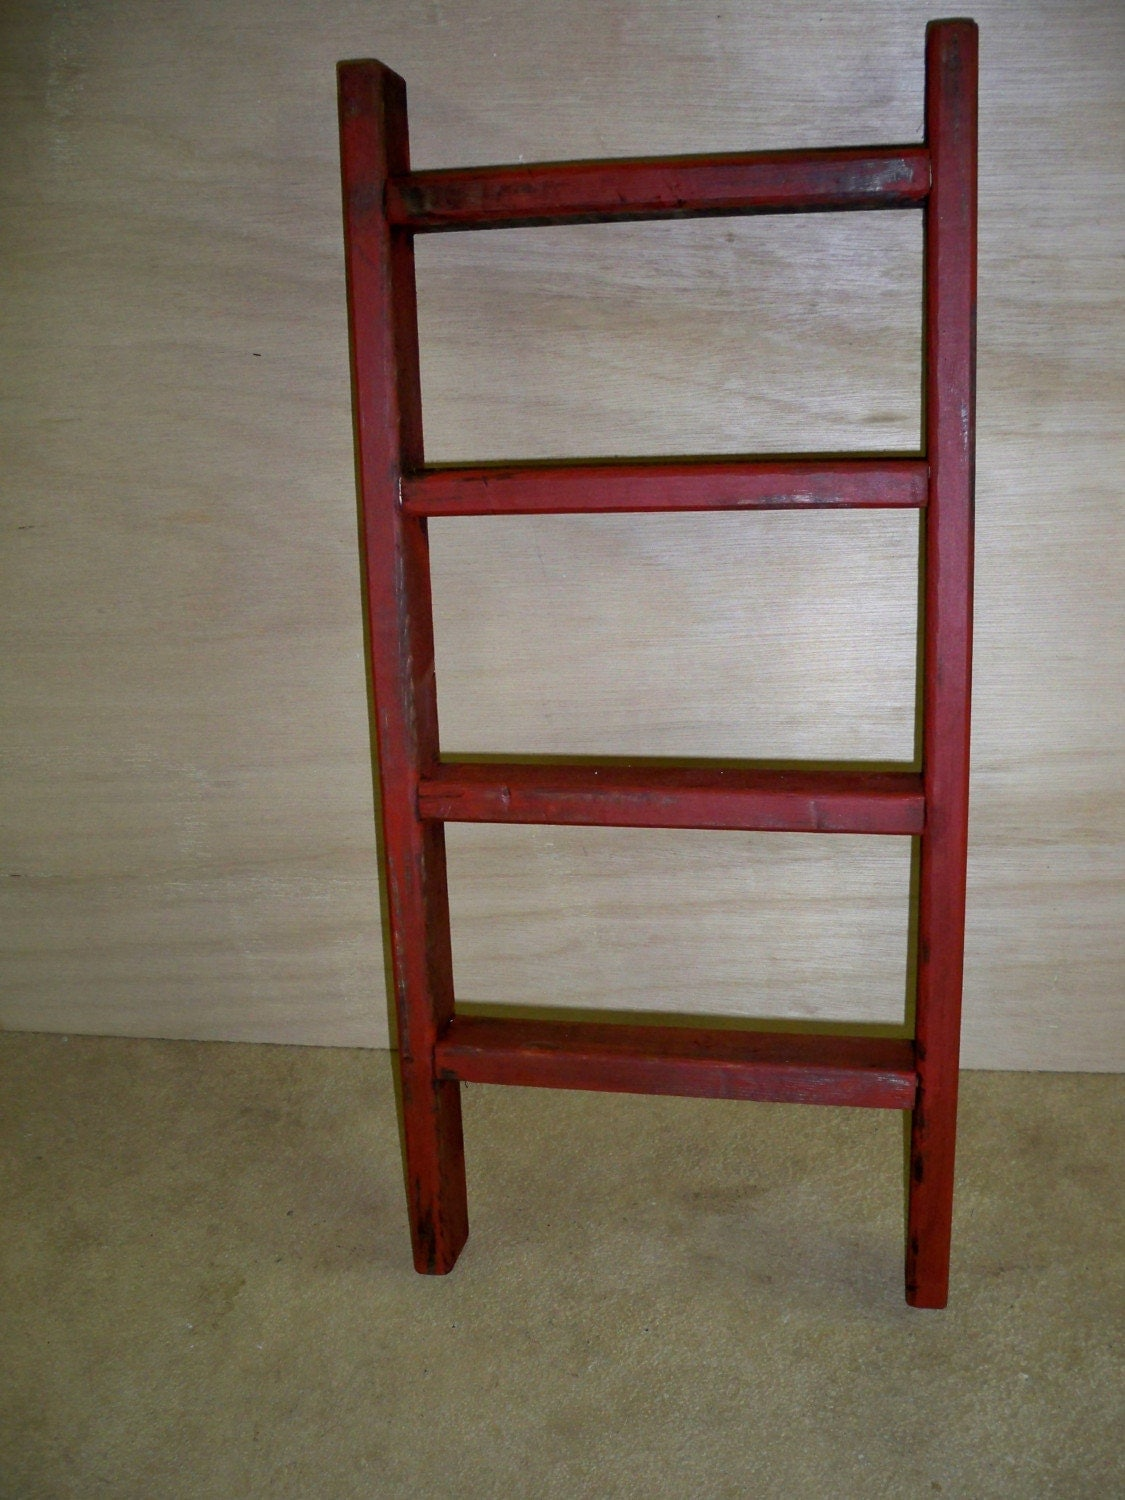 Ladder Shelves  Bookcases | Leaning Ladder Storage For The Home